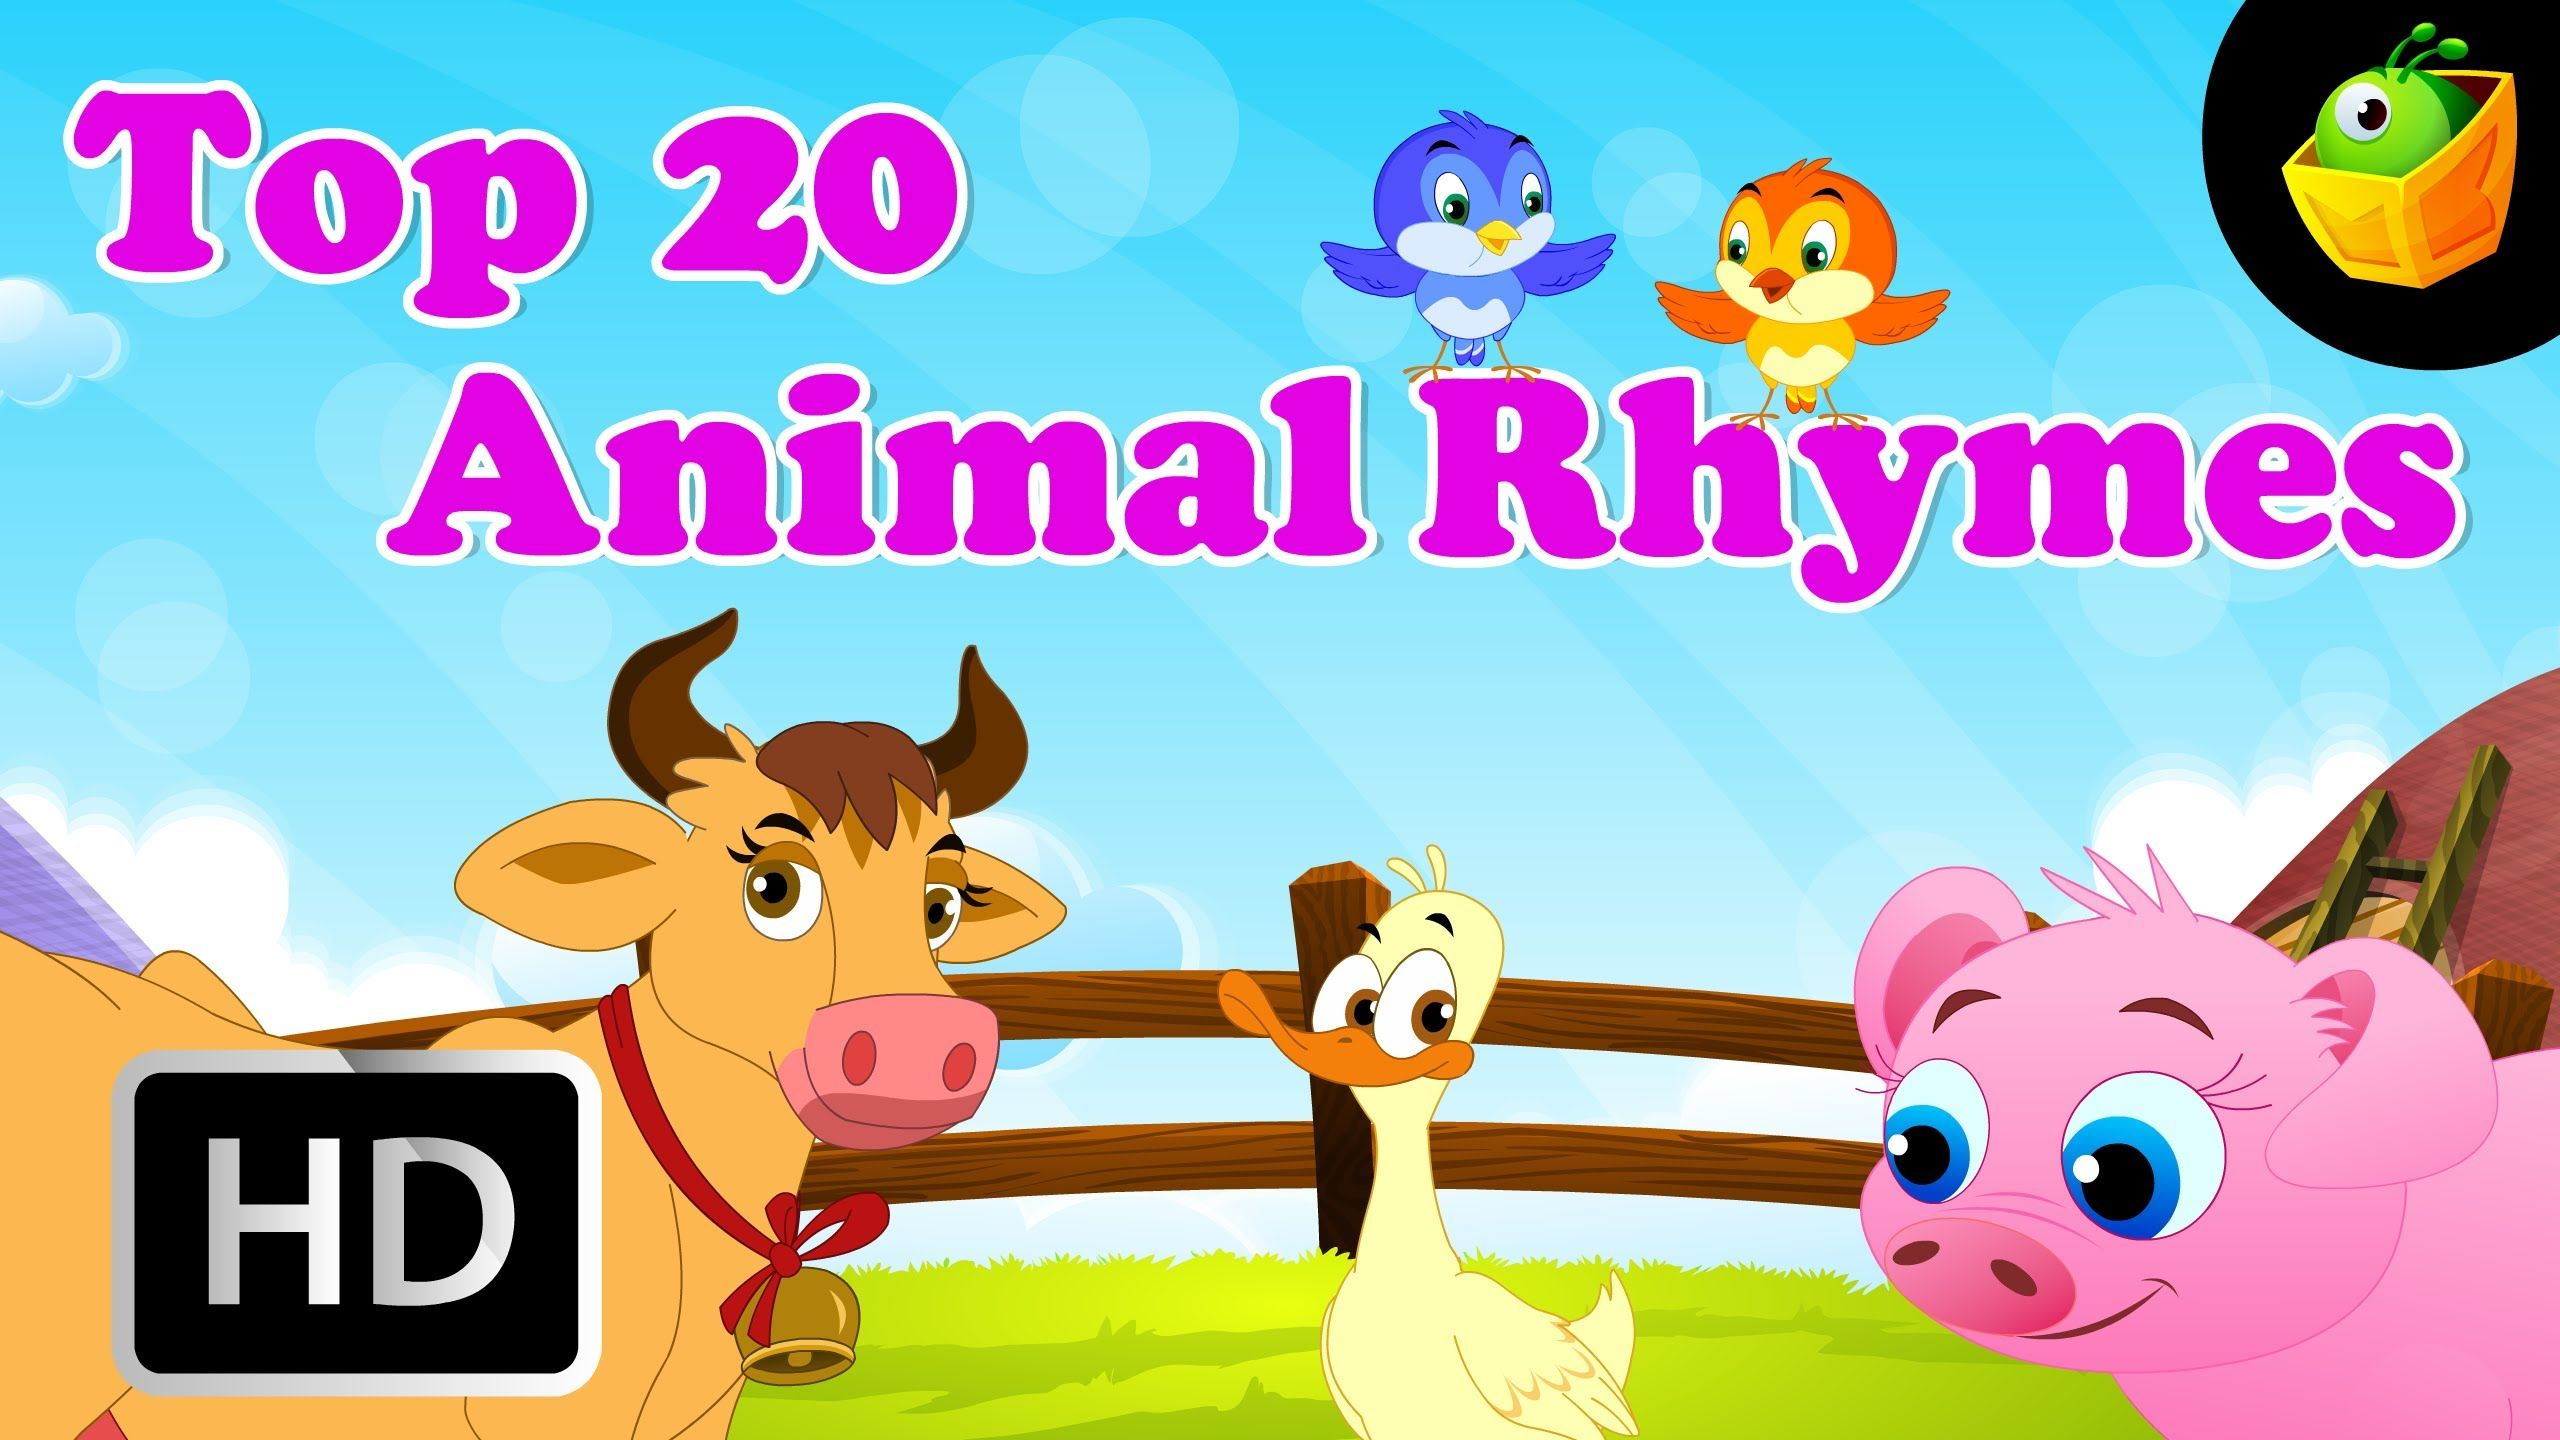 Top 20 Animal Compiled English Rhymes Combination of